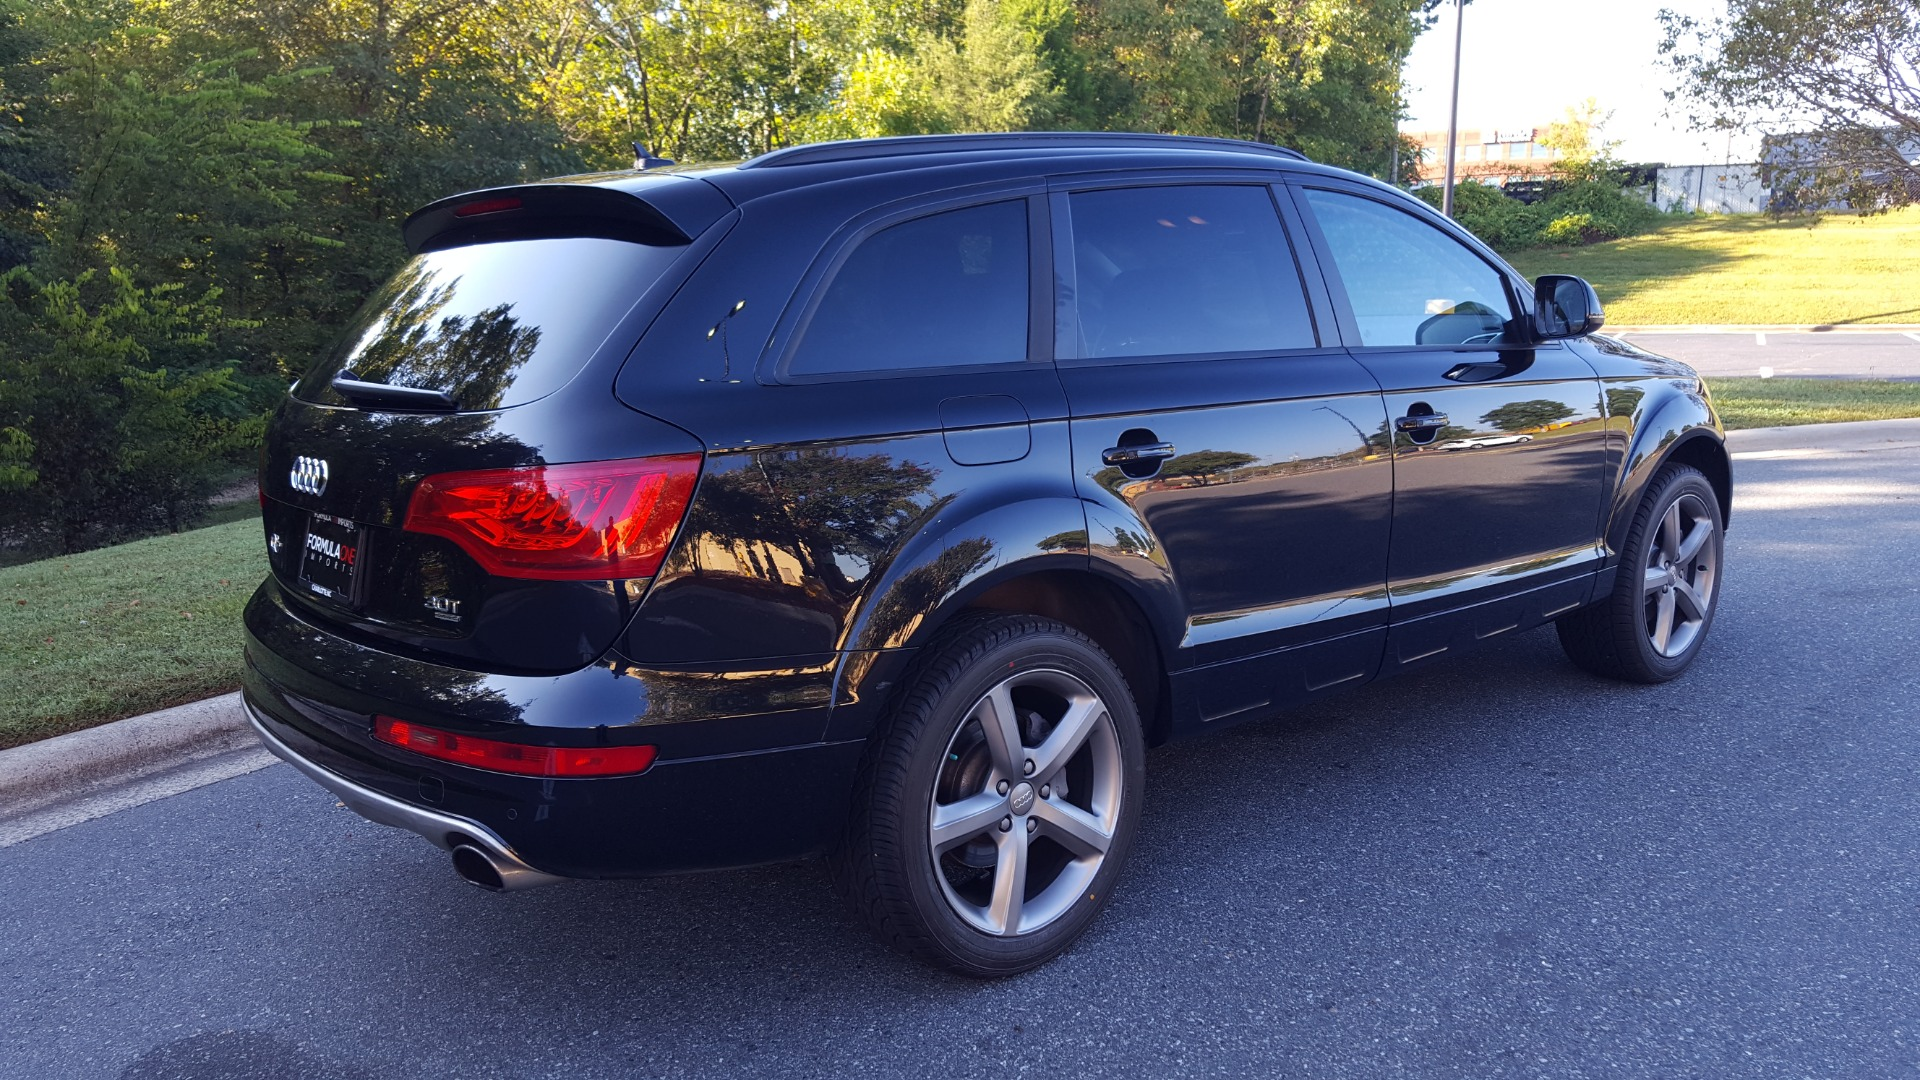 Used 2015 Audi Q7 3.0T PREMIUM PLUS TIPTRONIC / NAV / OFFROAD PLUS / WARM WEATHER / COLD WEAT for sale Sold at Formula Imports in Charlotte NC 28227 8